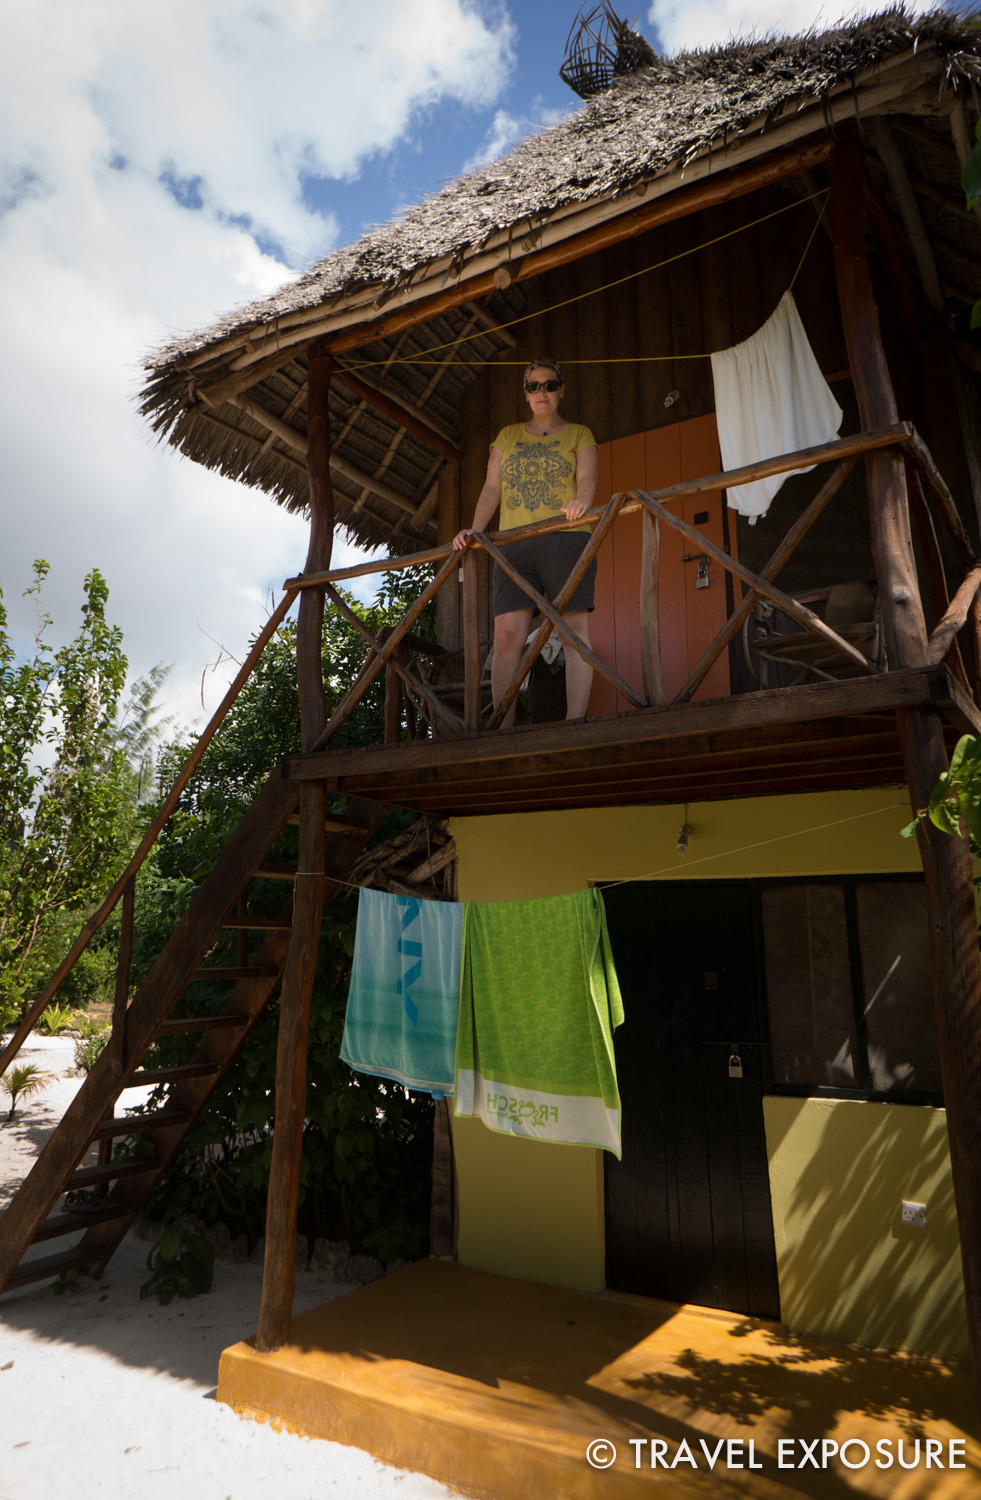 We stayed in this top floor bungalow in Paje at a cool backpacker place called Demani Lodge.